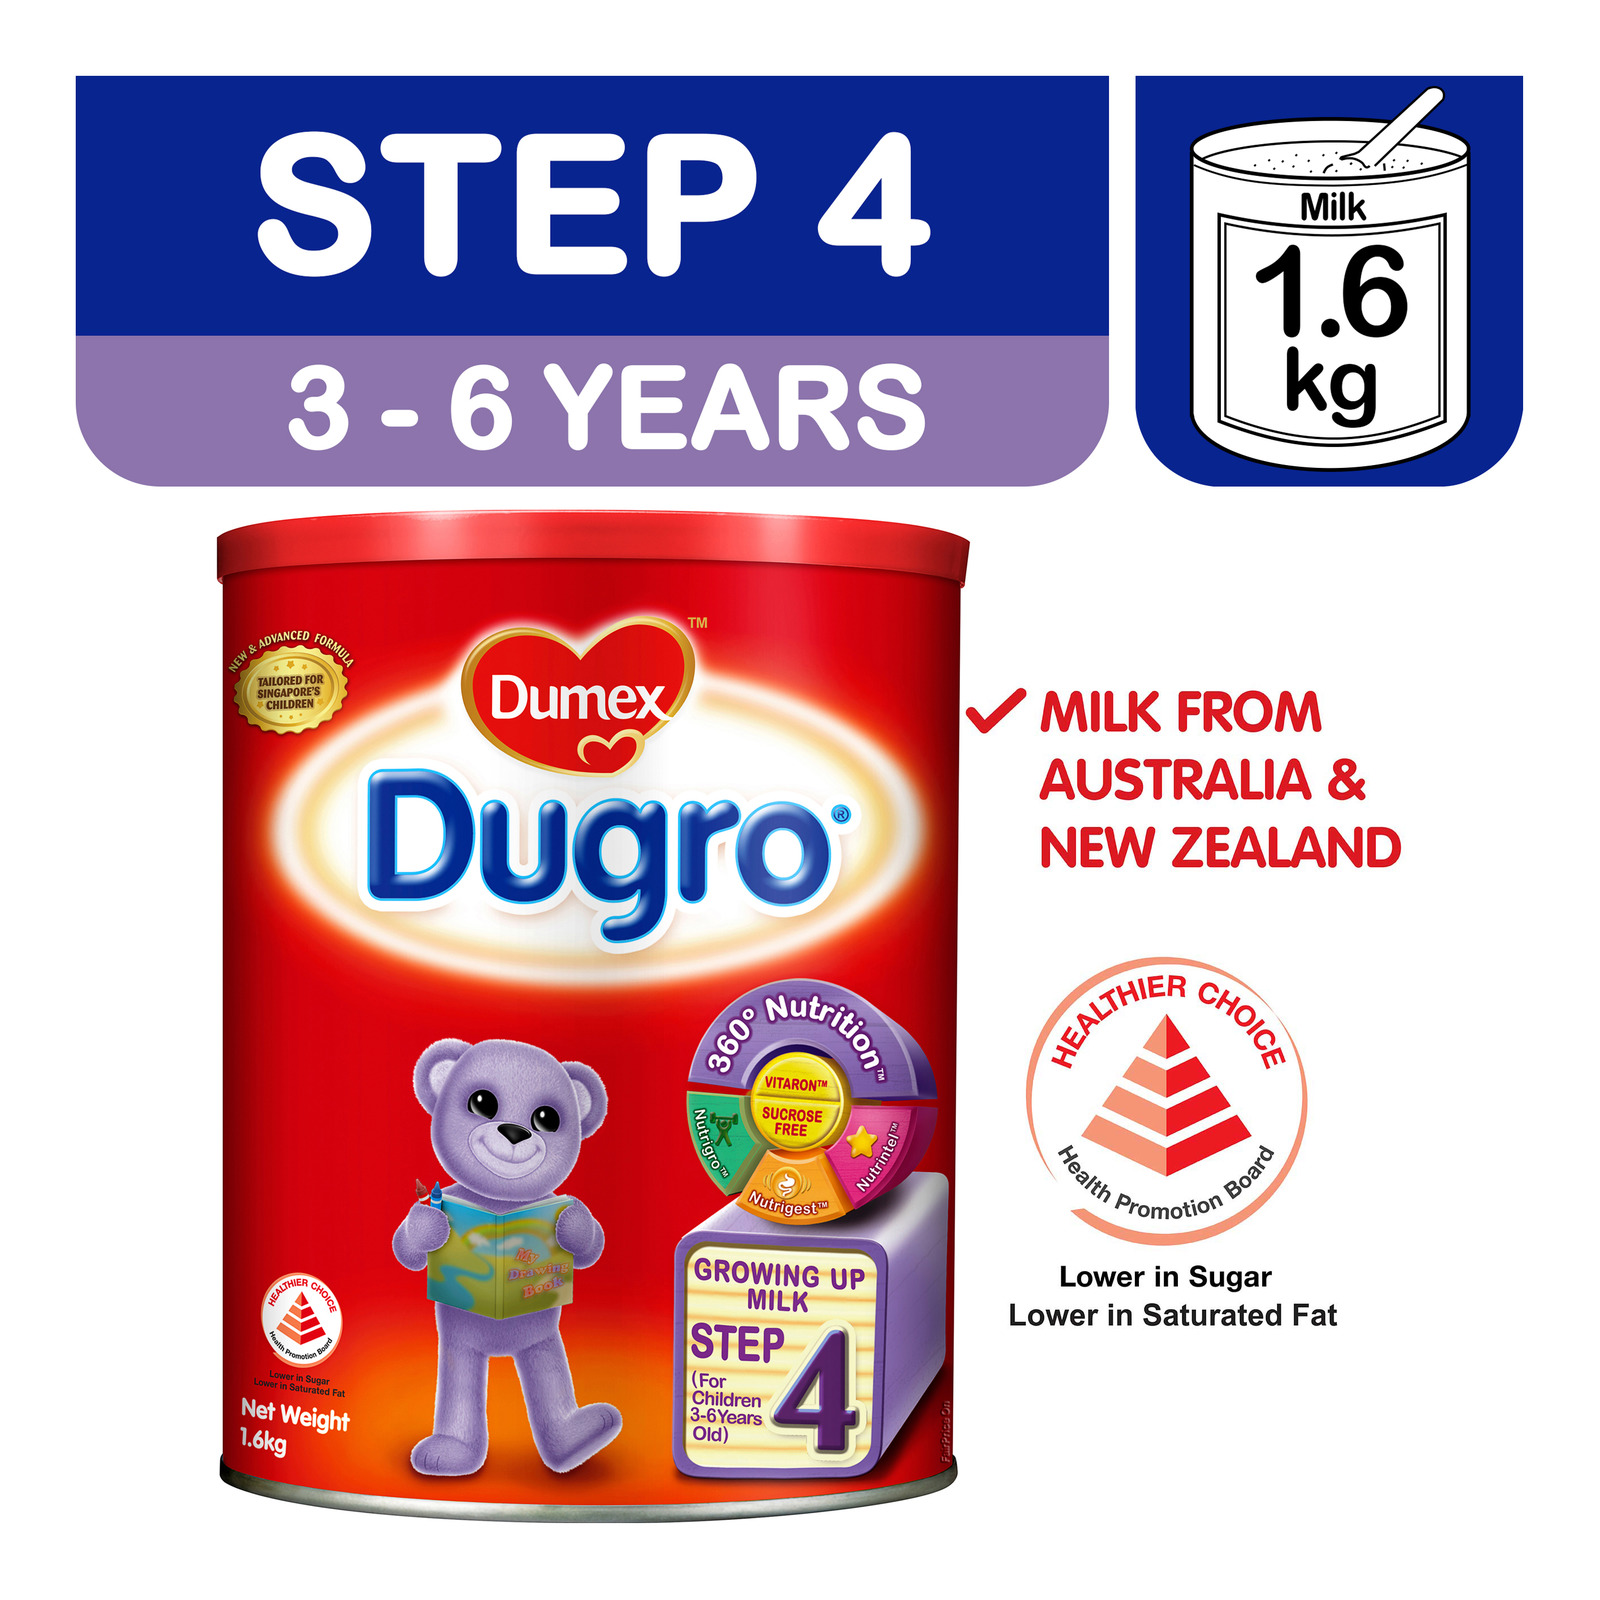 Dumex Dugro Growing Up Milk Formula - Step 4